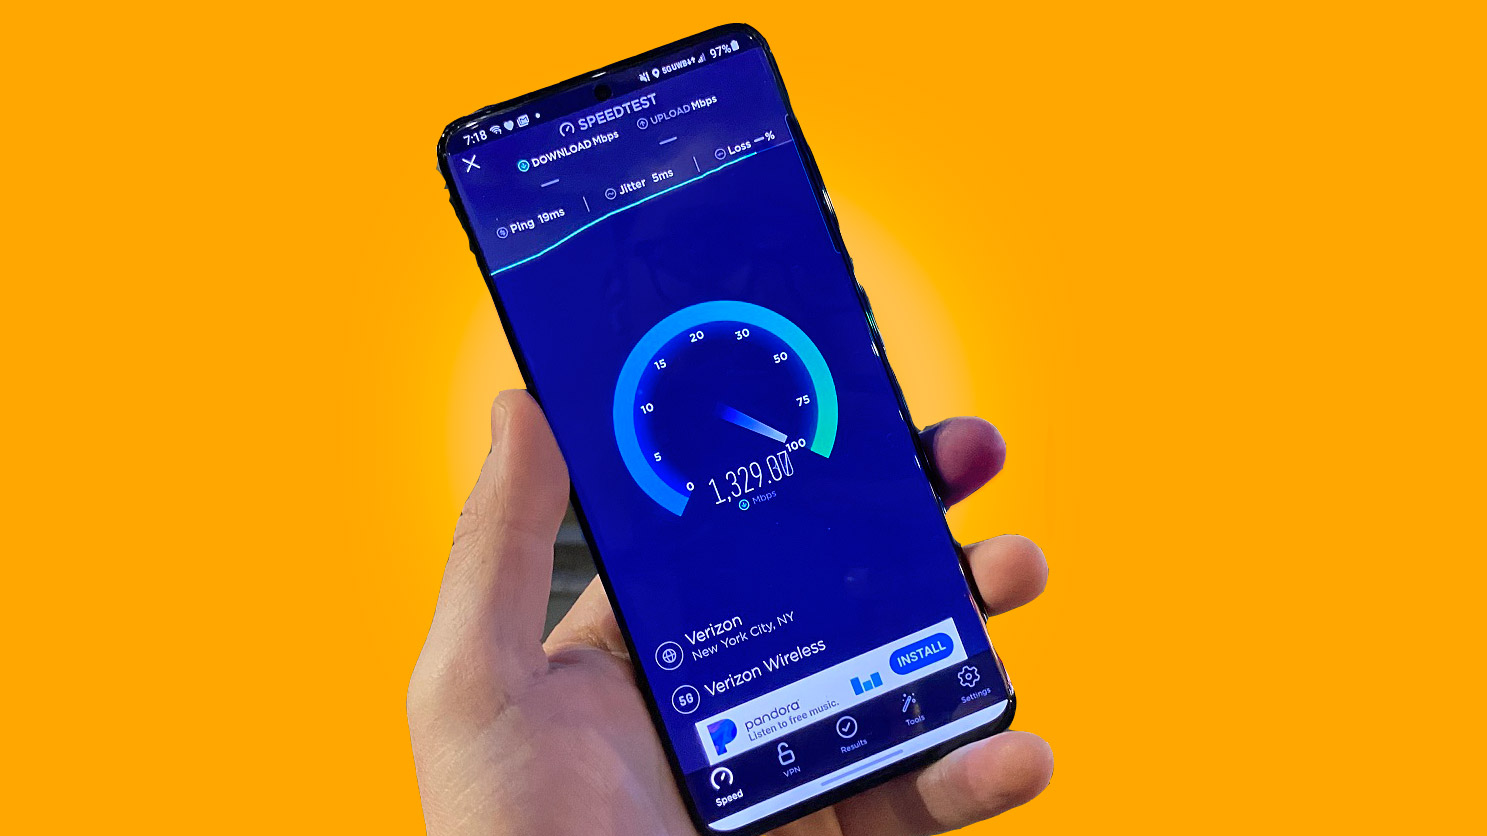 Best New Smartphones 2021 Best 5G phones 2020: the top handsets with next gen connectivity